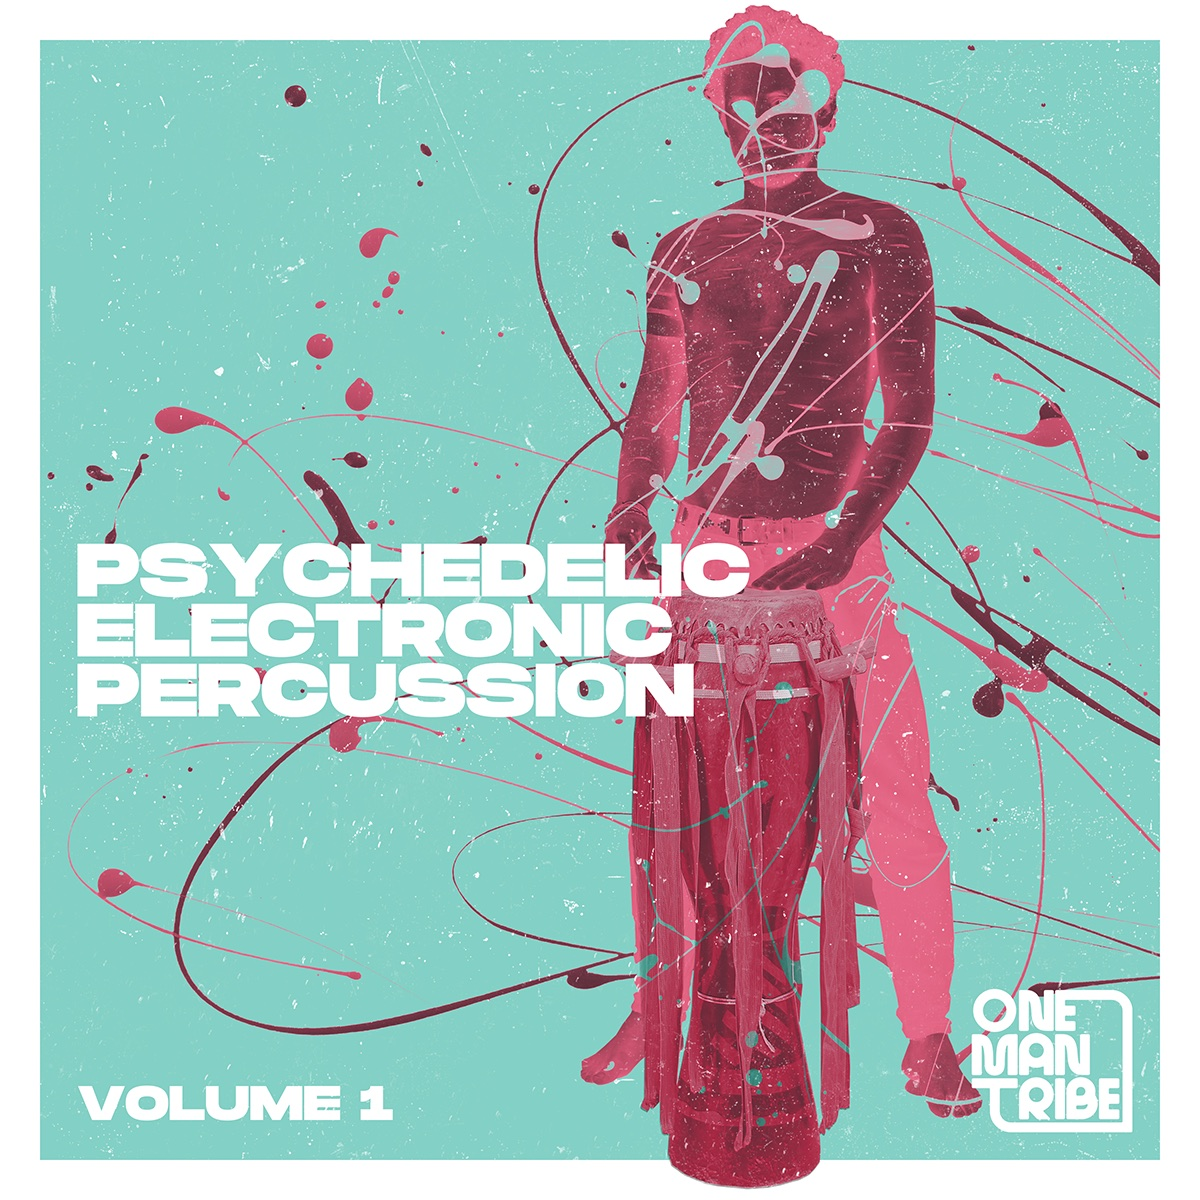 Psychedelic Electronic Percussion Vol. 1